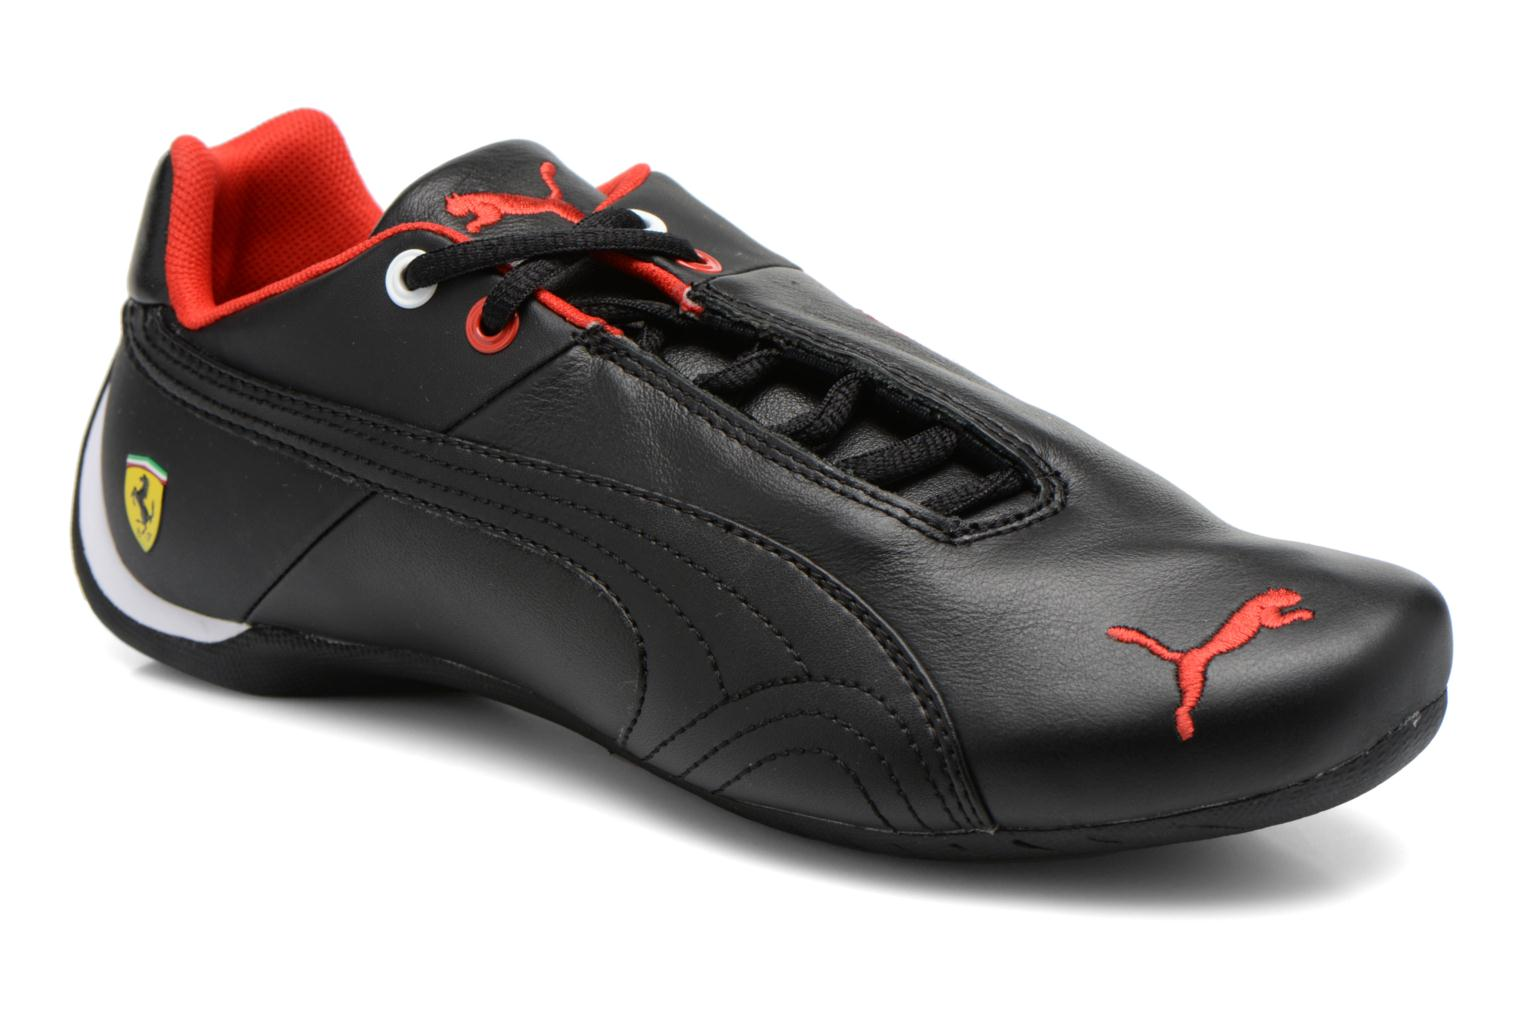 Baskets Puma Future Cat Leather SF 2I185tq1k